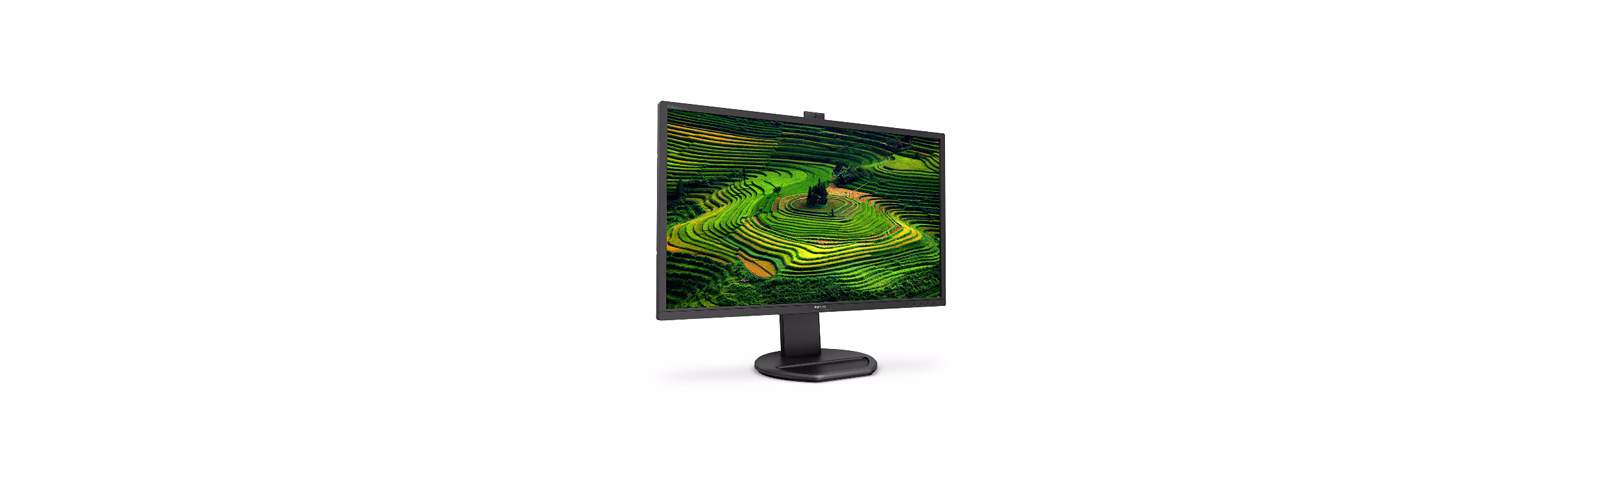 Philips unveils the 271B8QJKEB desktop monitor with a built-in camera